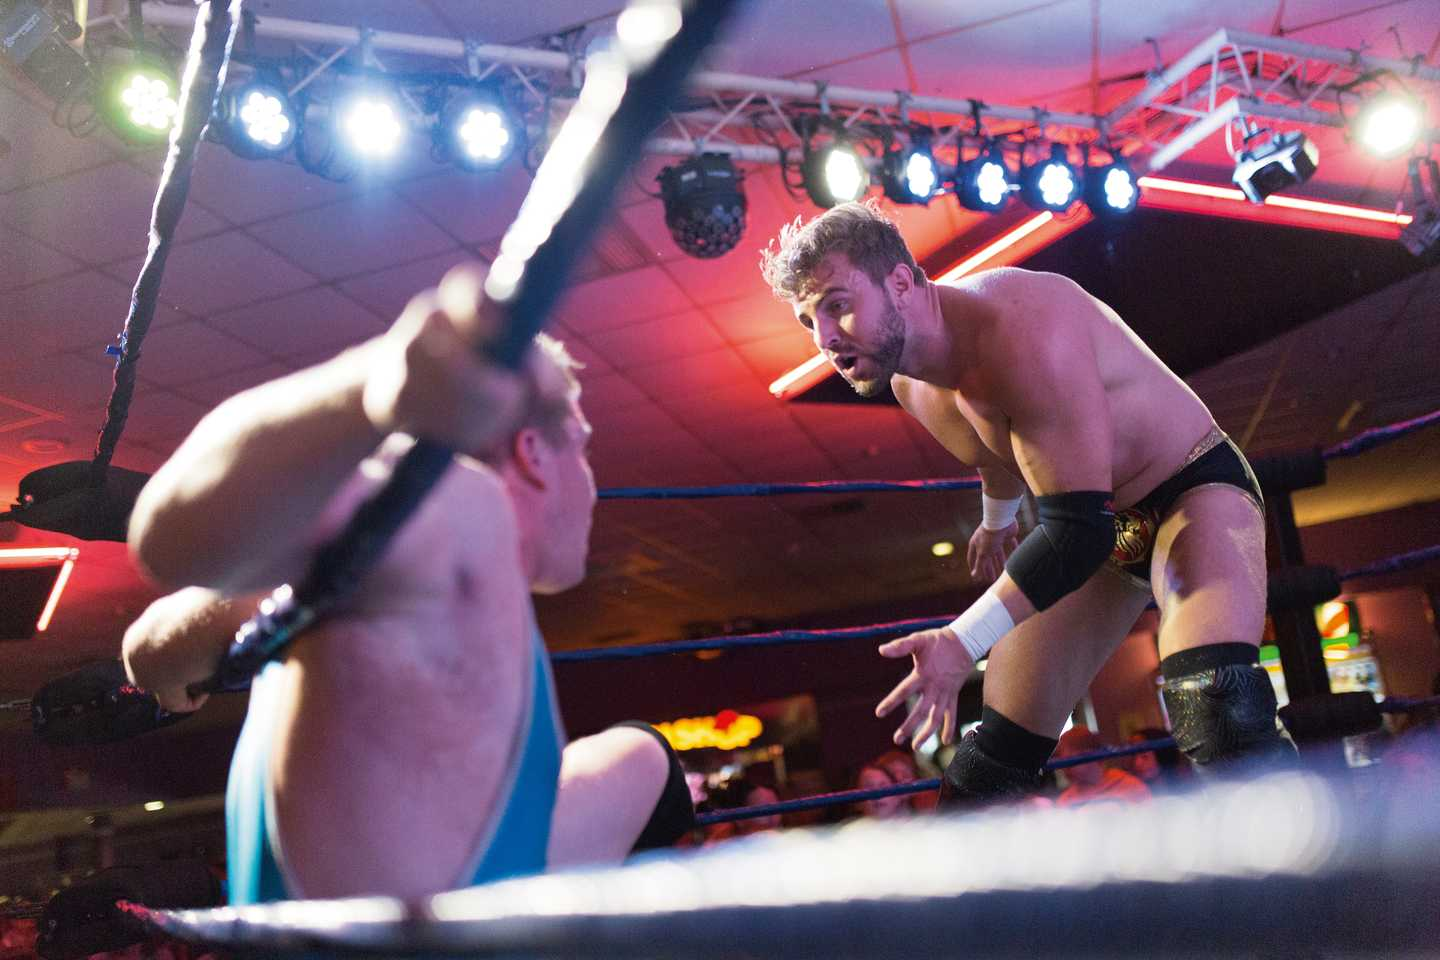 Wrestling stars battling it out in the ring